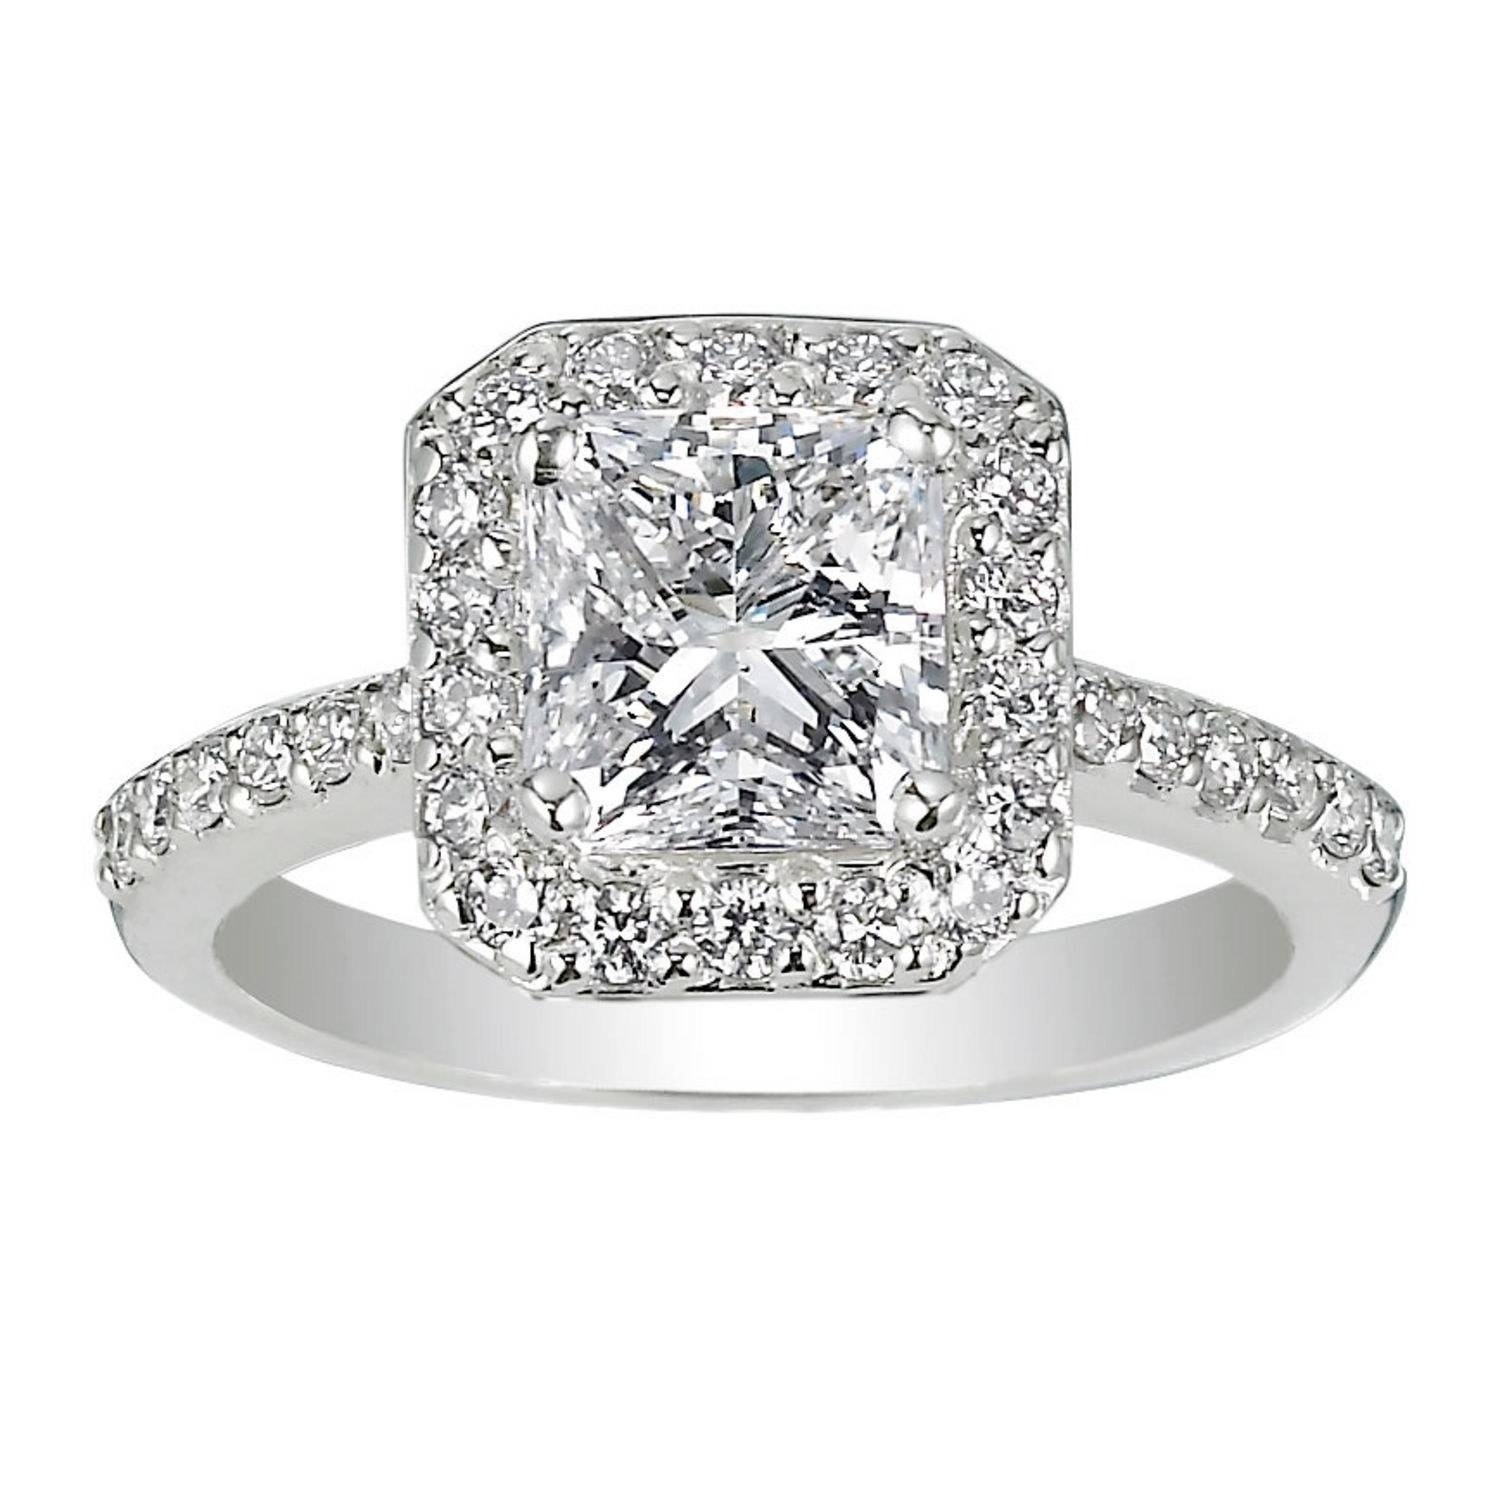 62 Diamond Engagement Rings Under $5,000 | Glamour Pertaining To Wedding Rings With Engagement Rings (Gallery 10 of 15)